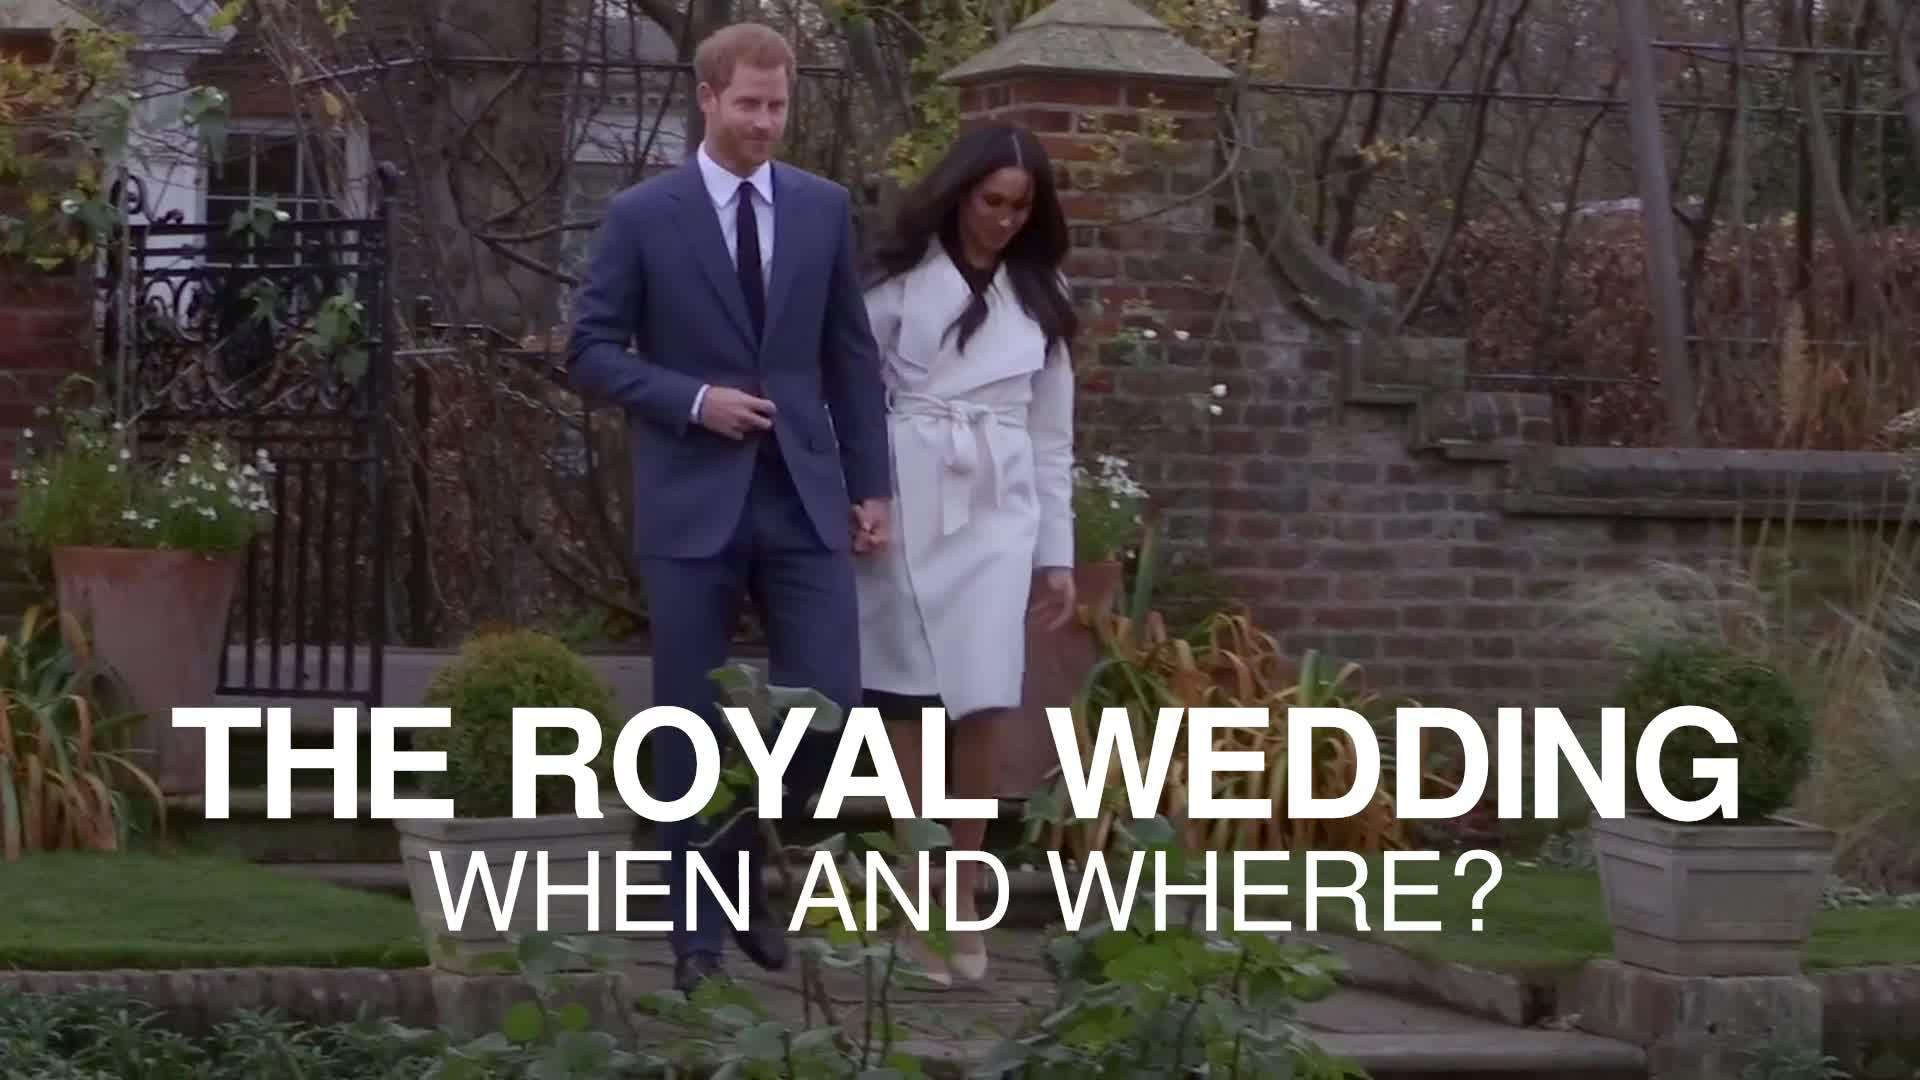 When and where will the royal wedding be held?